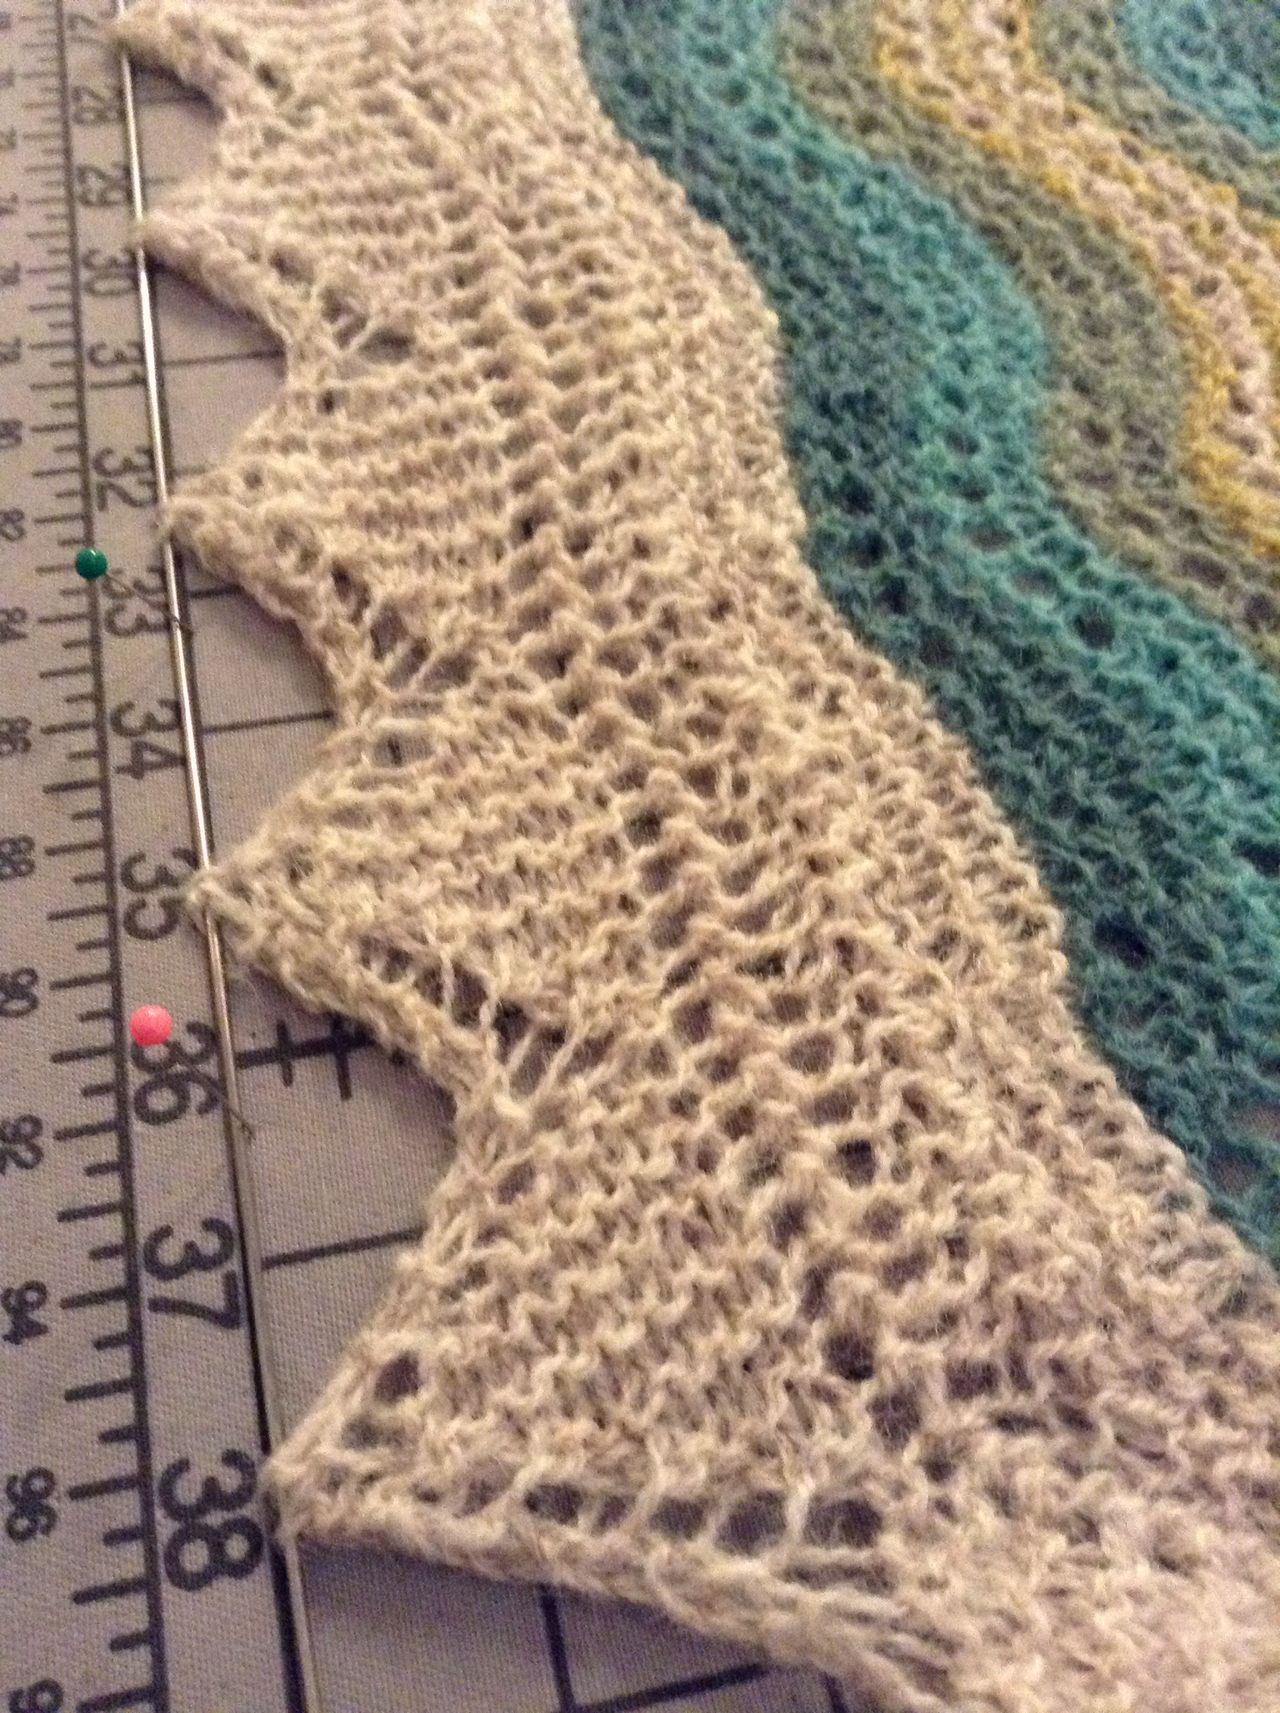 (5) Thread points of lace edging through blocking wire